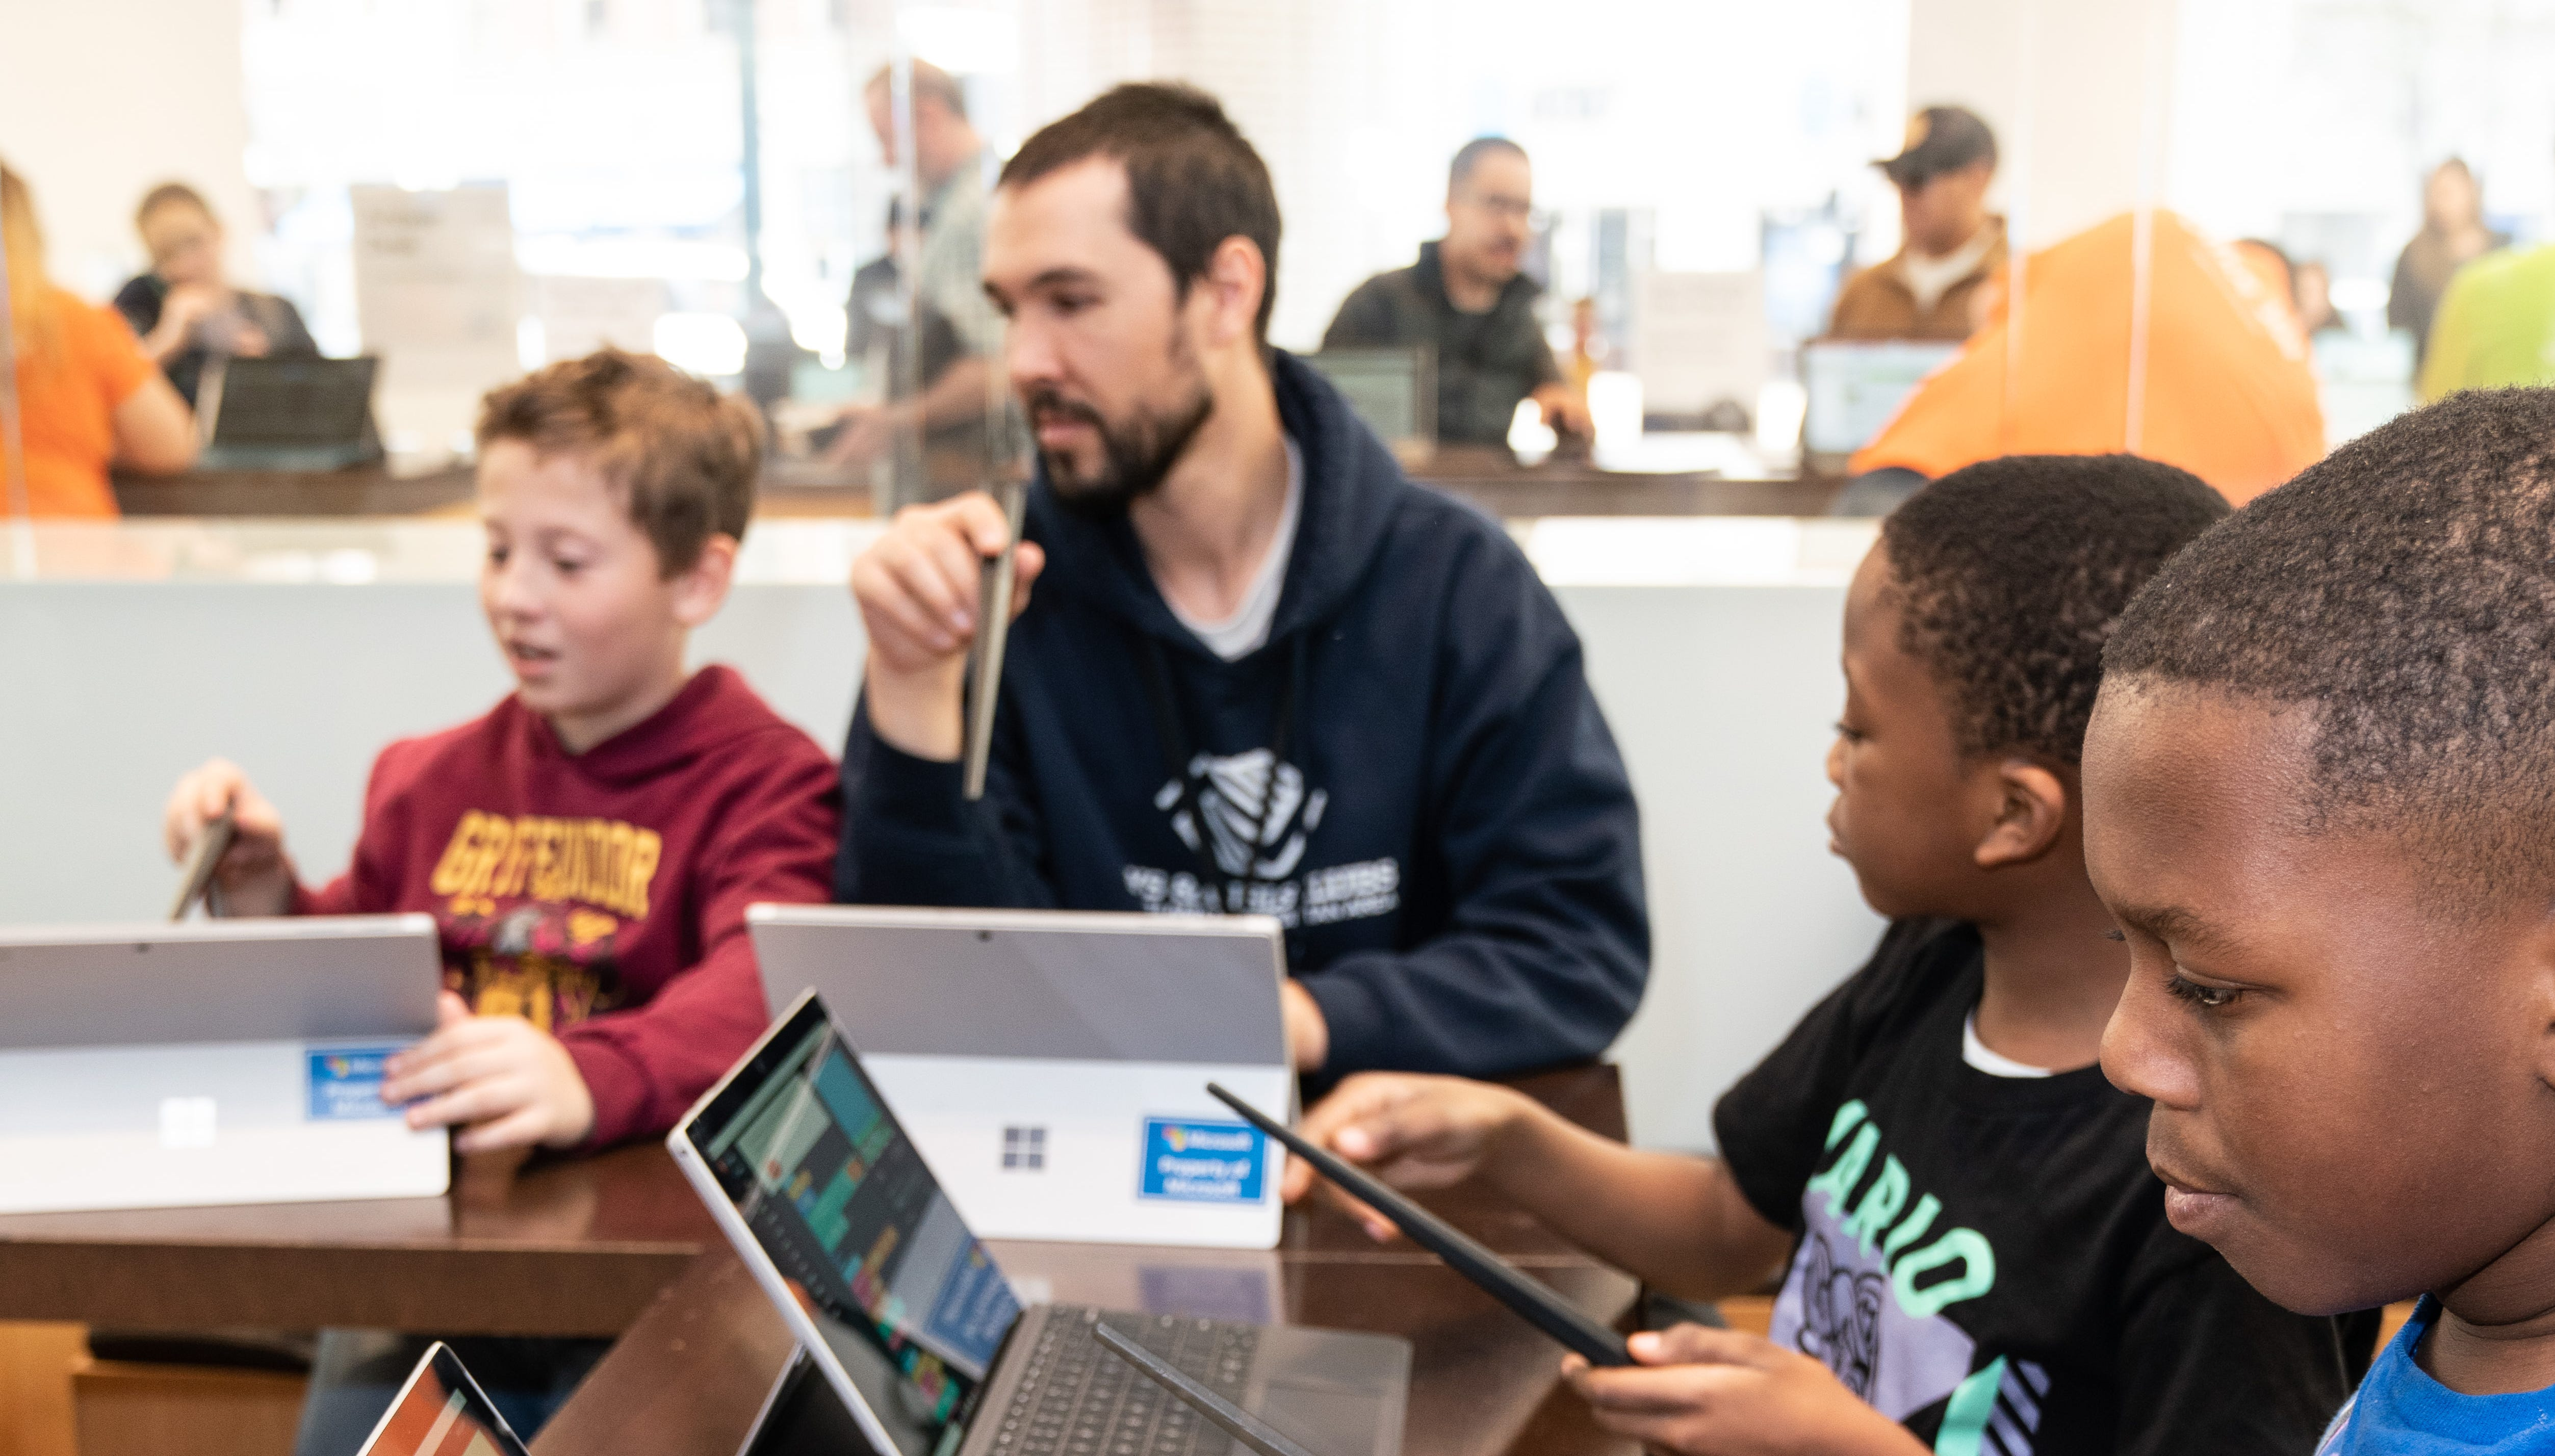 Free coding camp among activities this summer at Kenwood Microsoft store